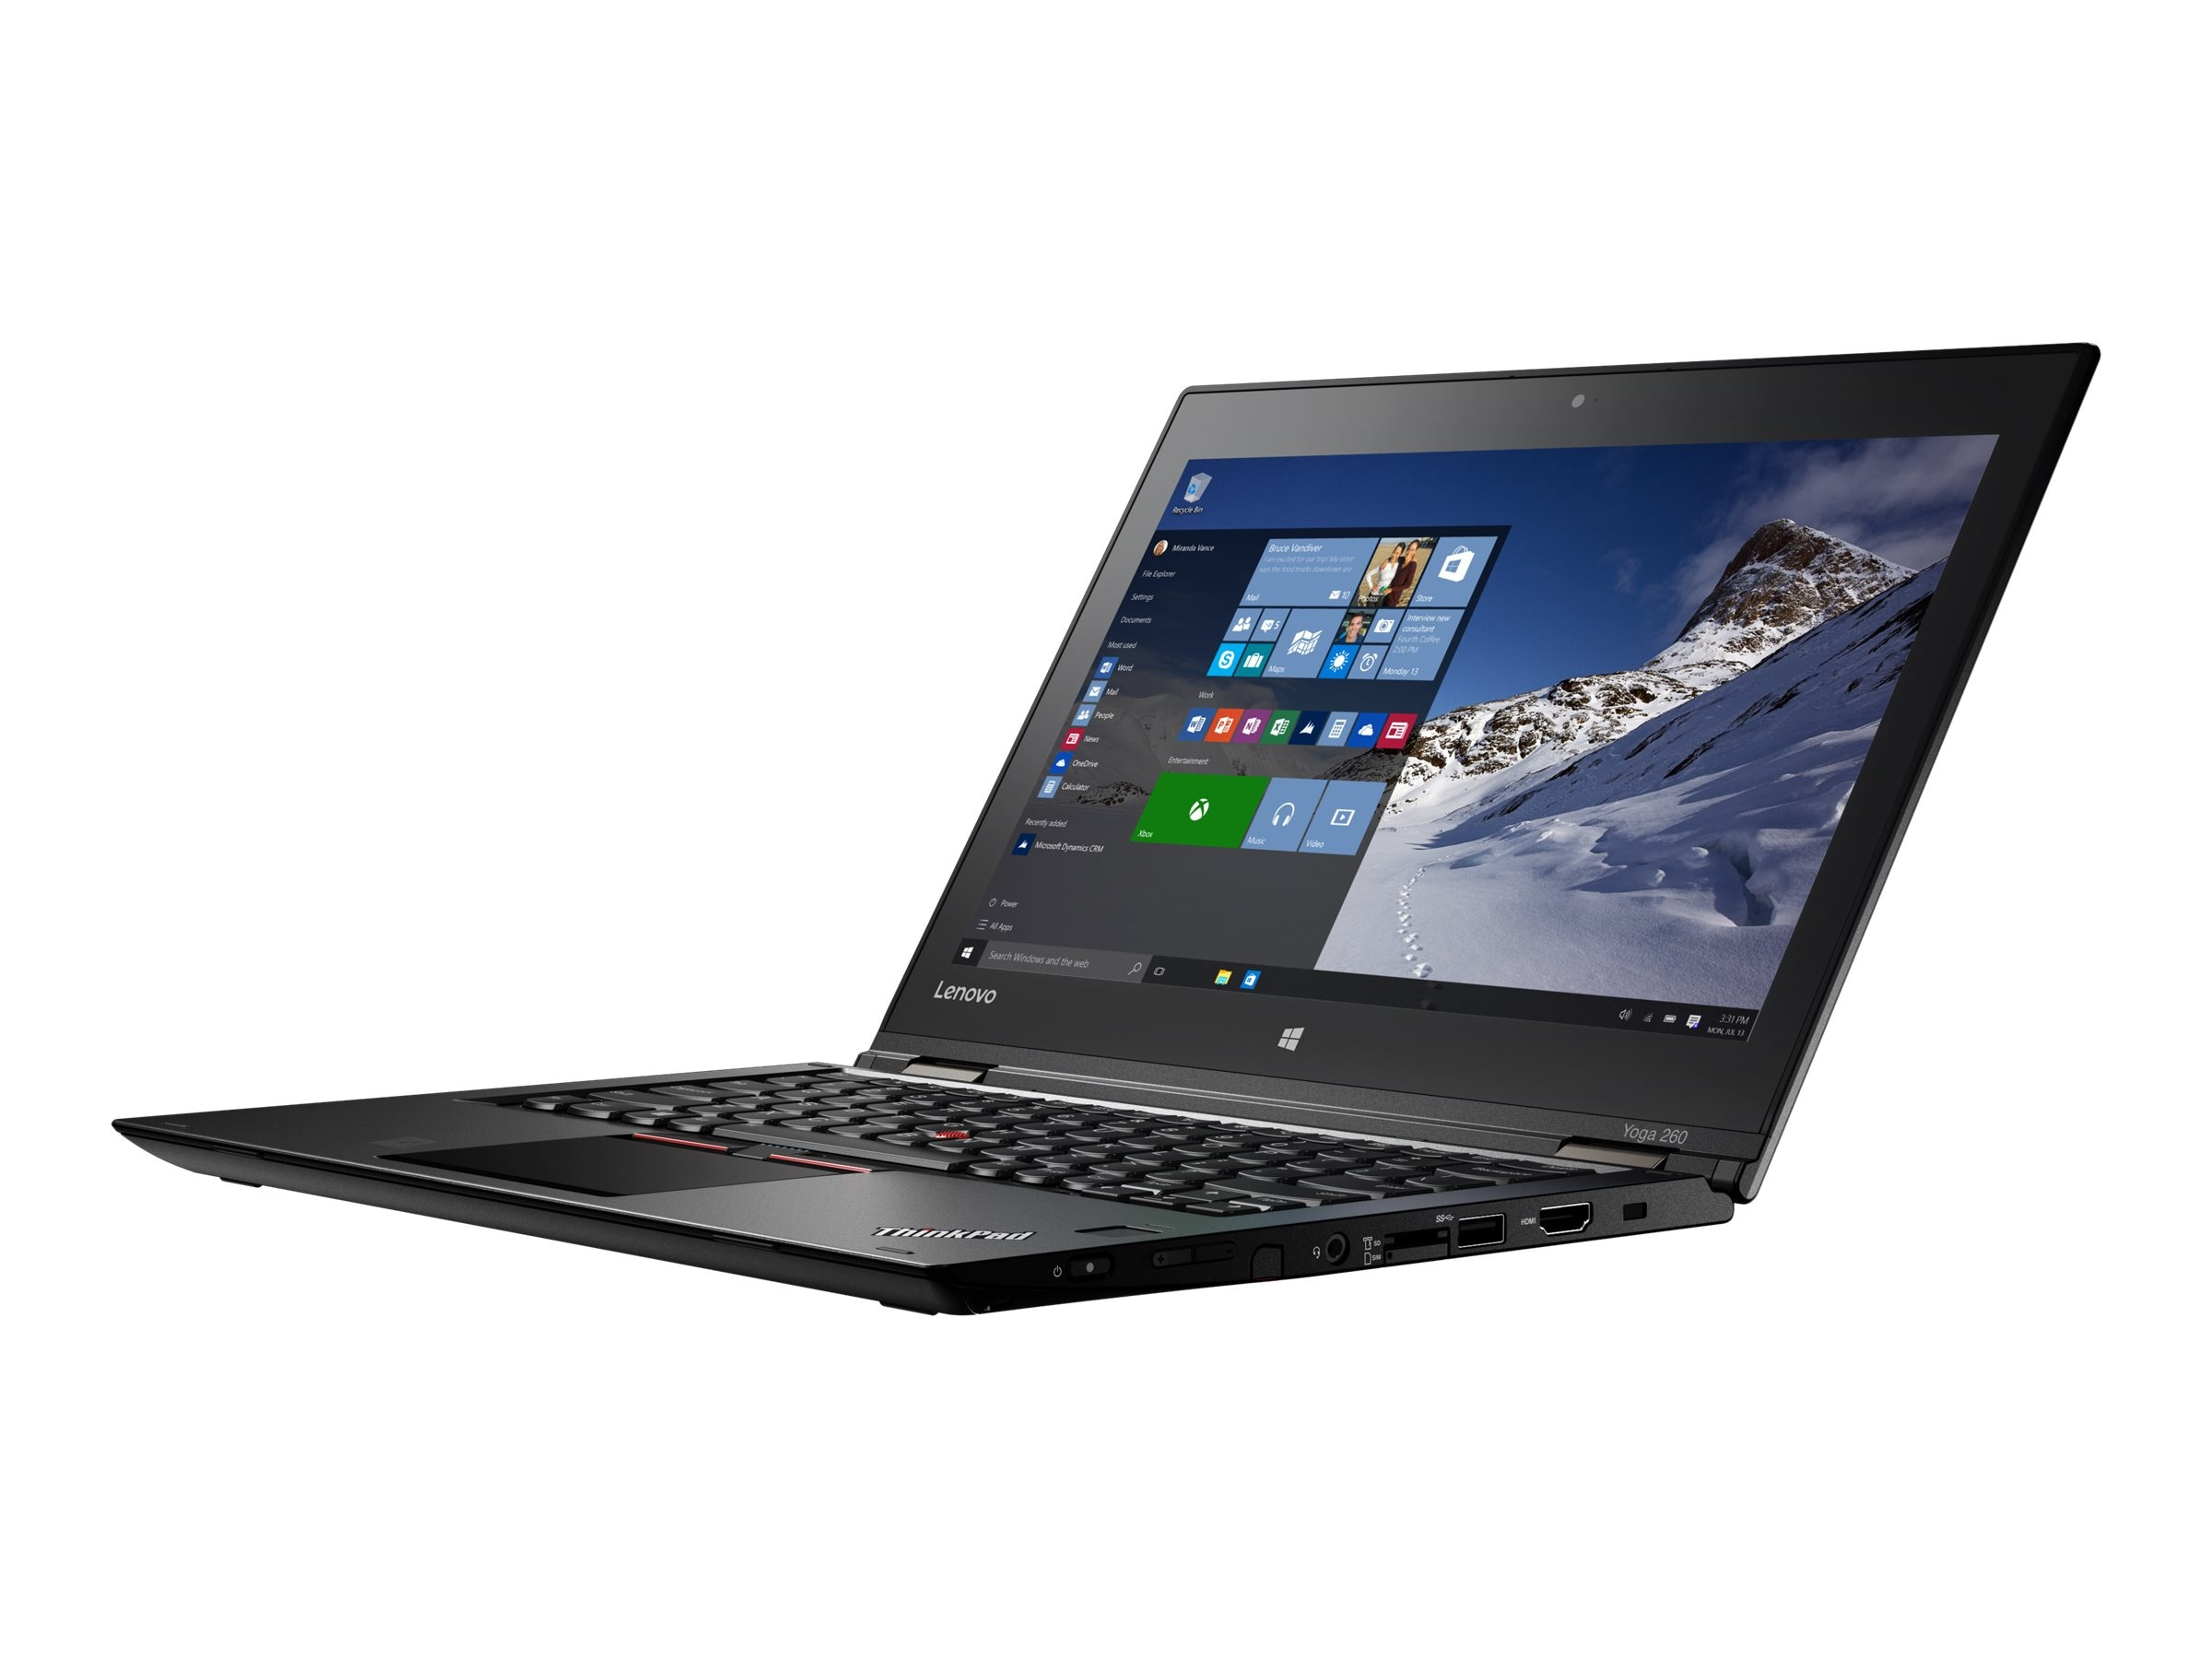 Lenovo TopSeller ThinkPad Yoga 260 Core i5-6300U 2.4GHz 8GB 256GB OPAL2 ac BT FR WC 4C 12.5 FHD MT W10P64, 20FD002HUS, 31221341, Notebooks - Convertible